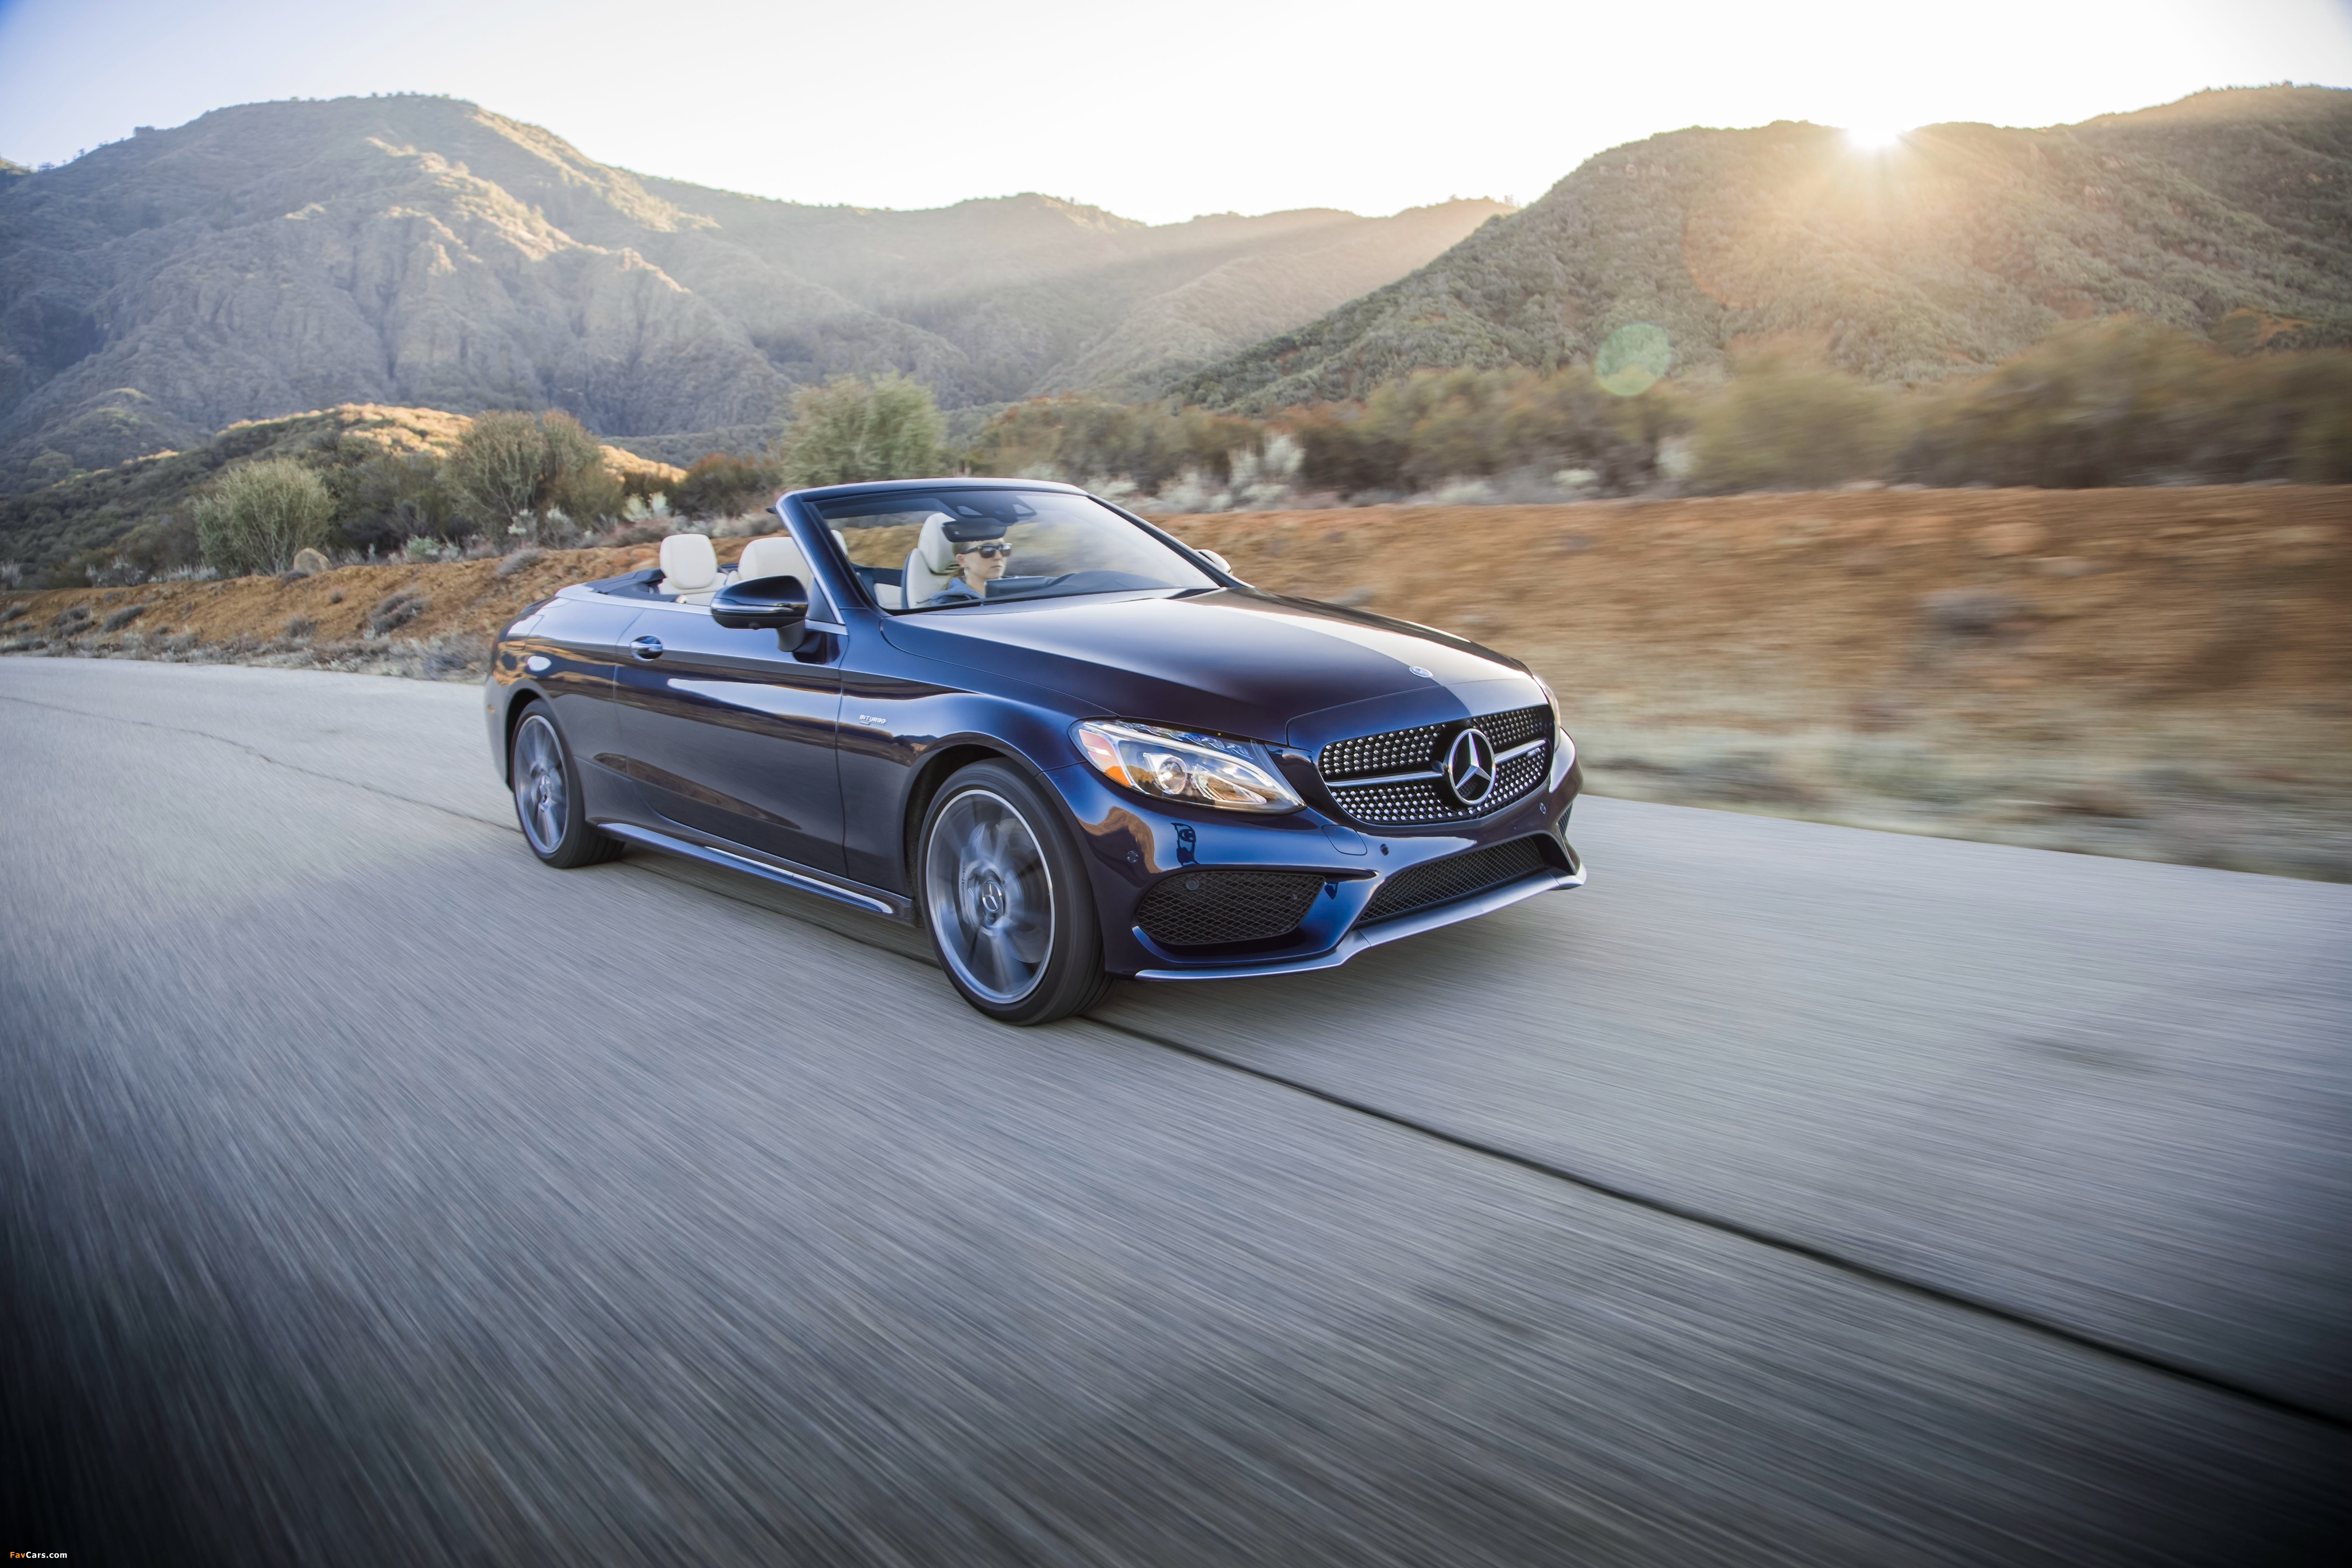 Photos of Mercedes-AMG C 43 4MATIC Cabriolet North America (A205) 2016 (4096 x 2731)